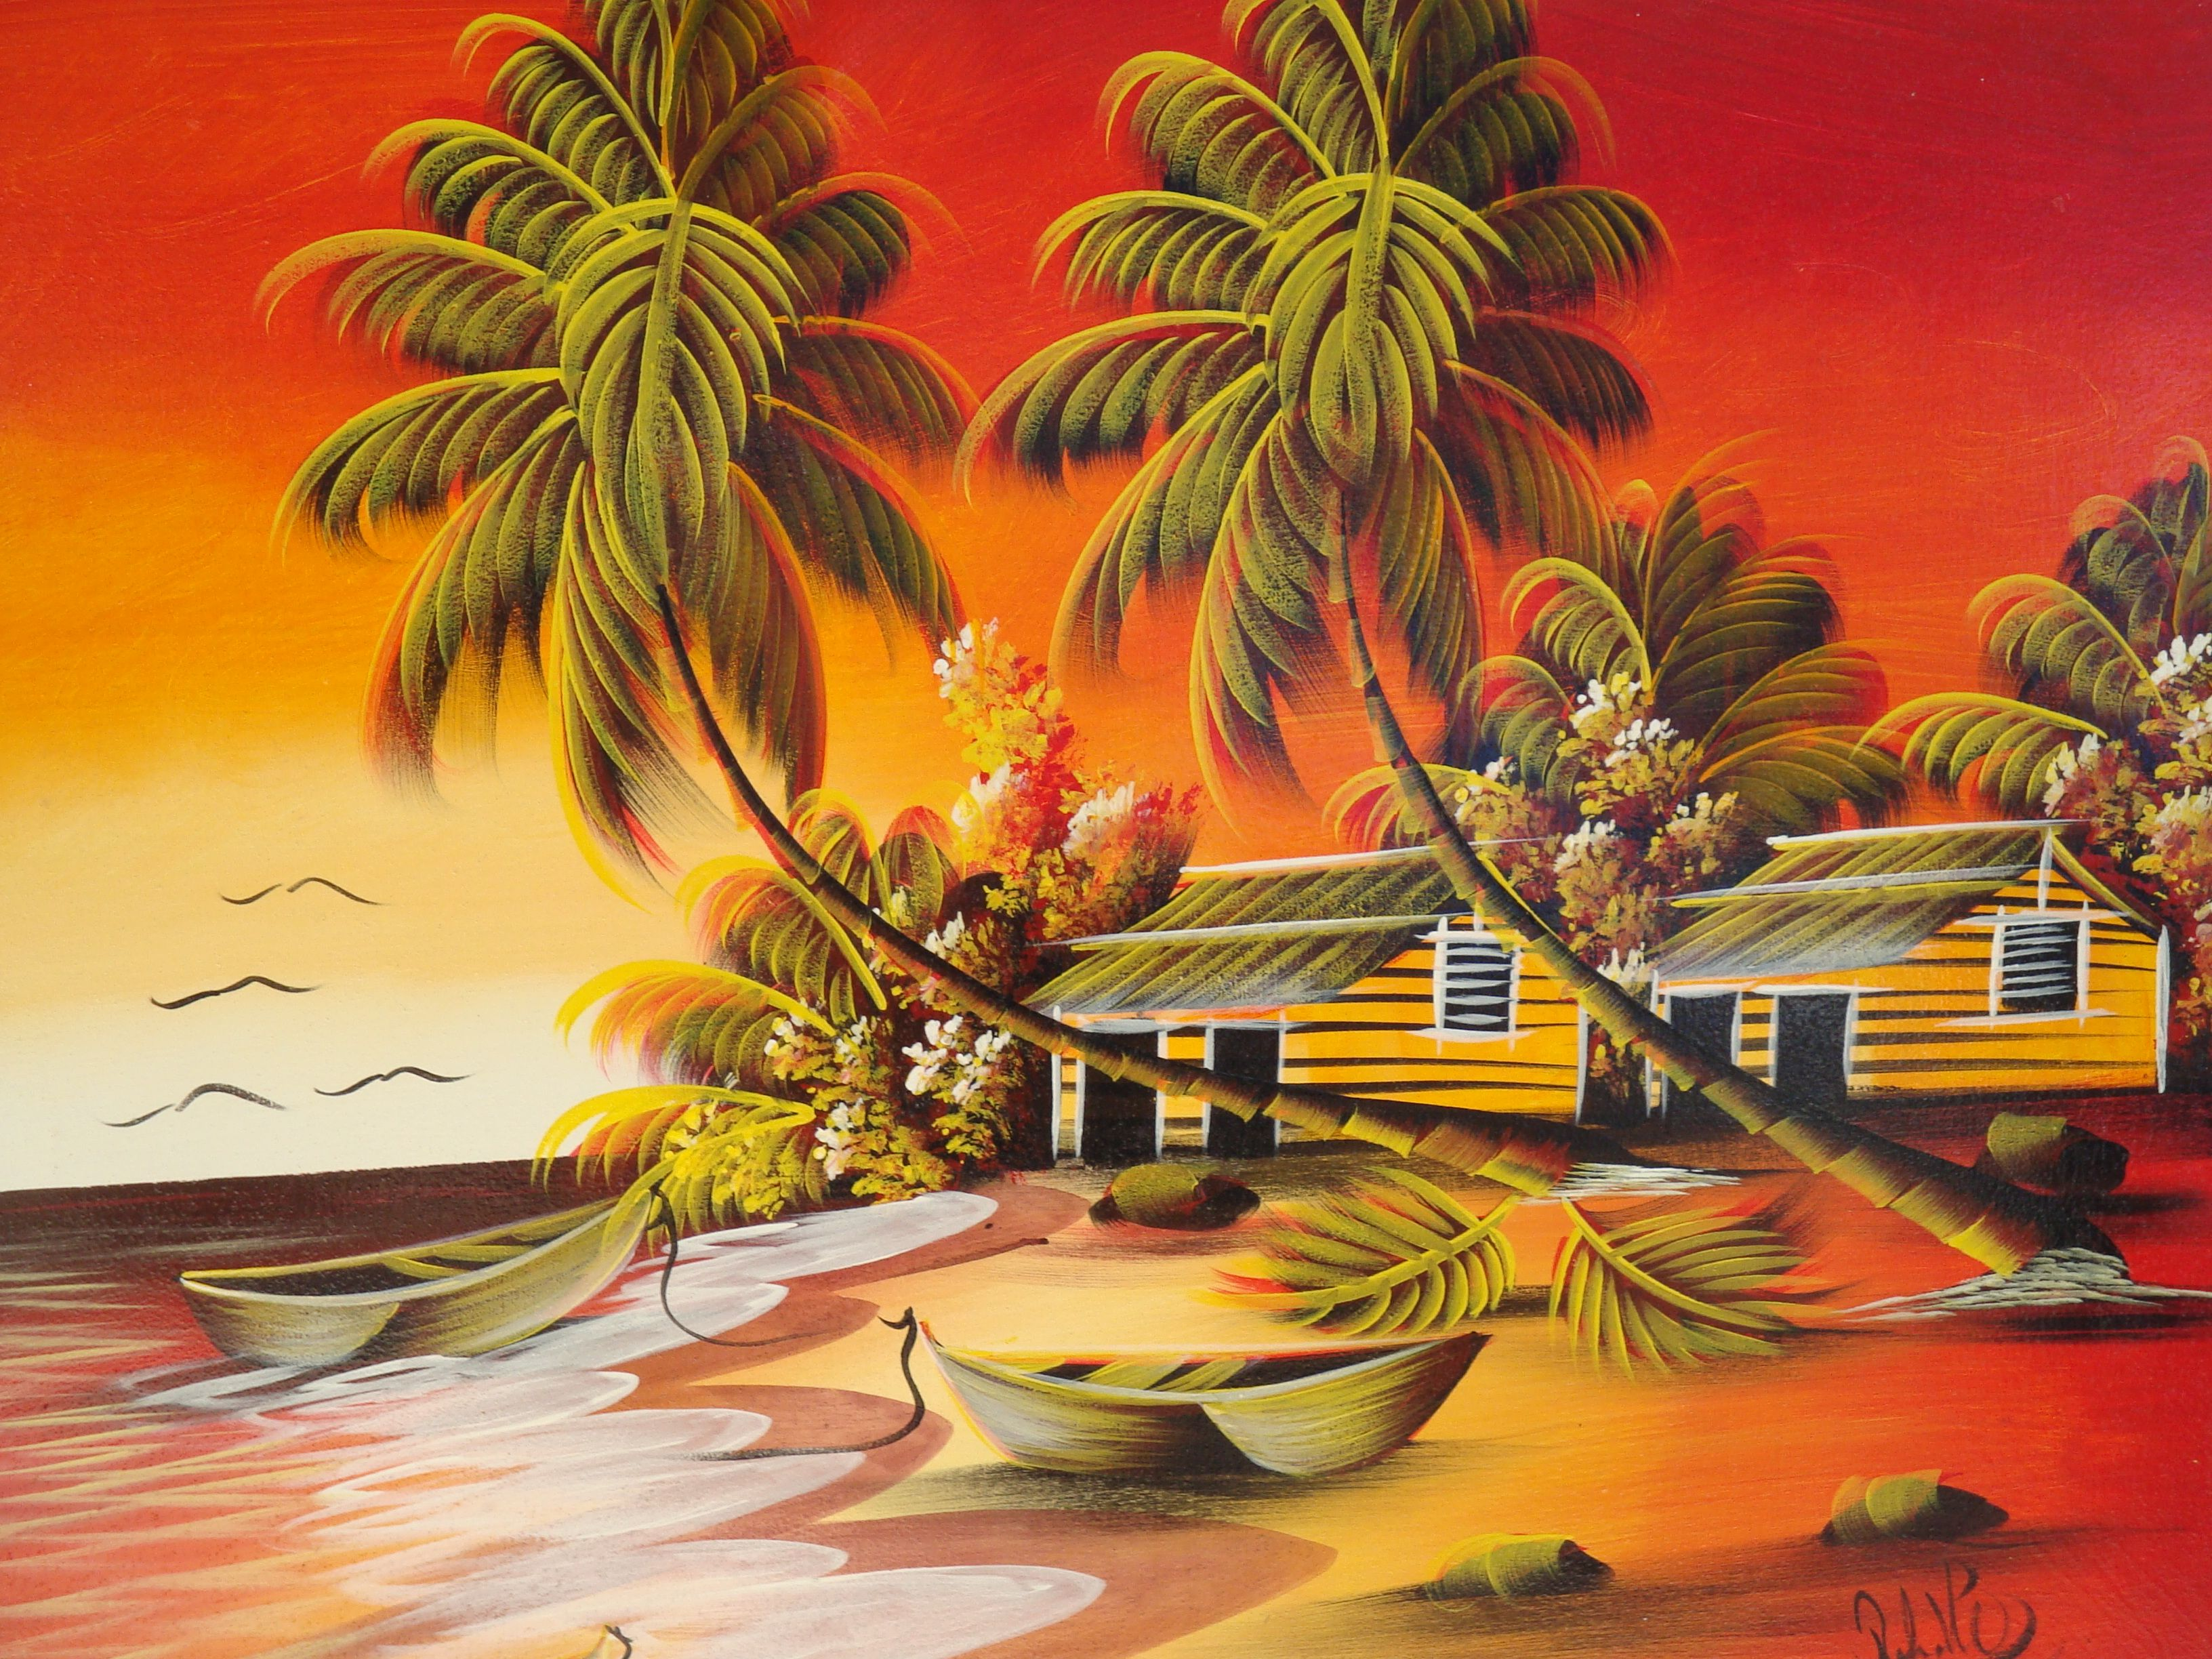 Dominican Republic Paintings - Google Love Arte Latino And